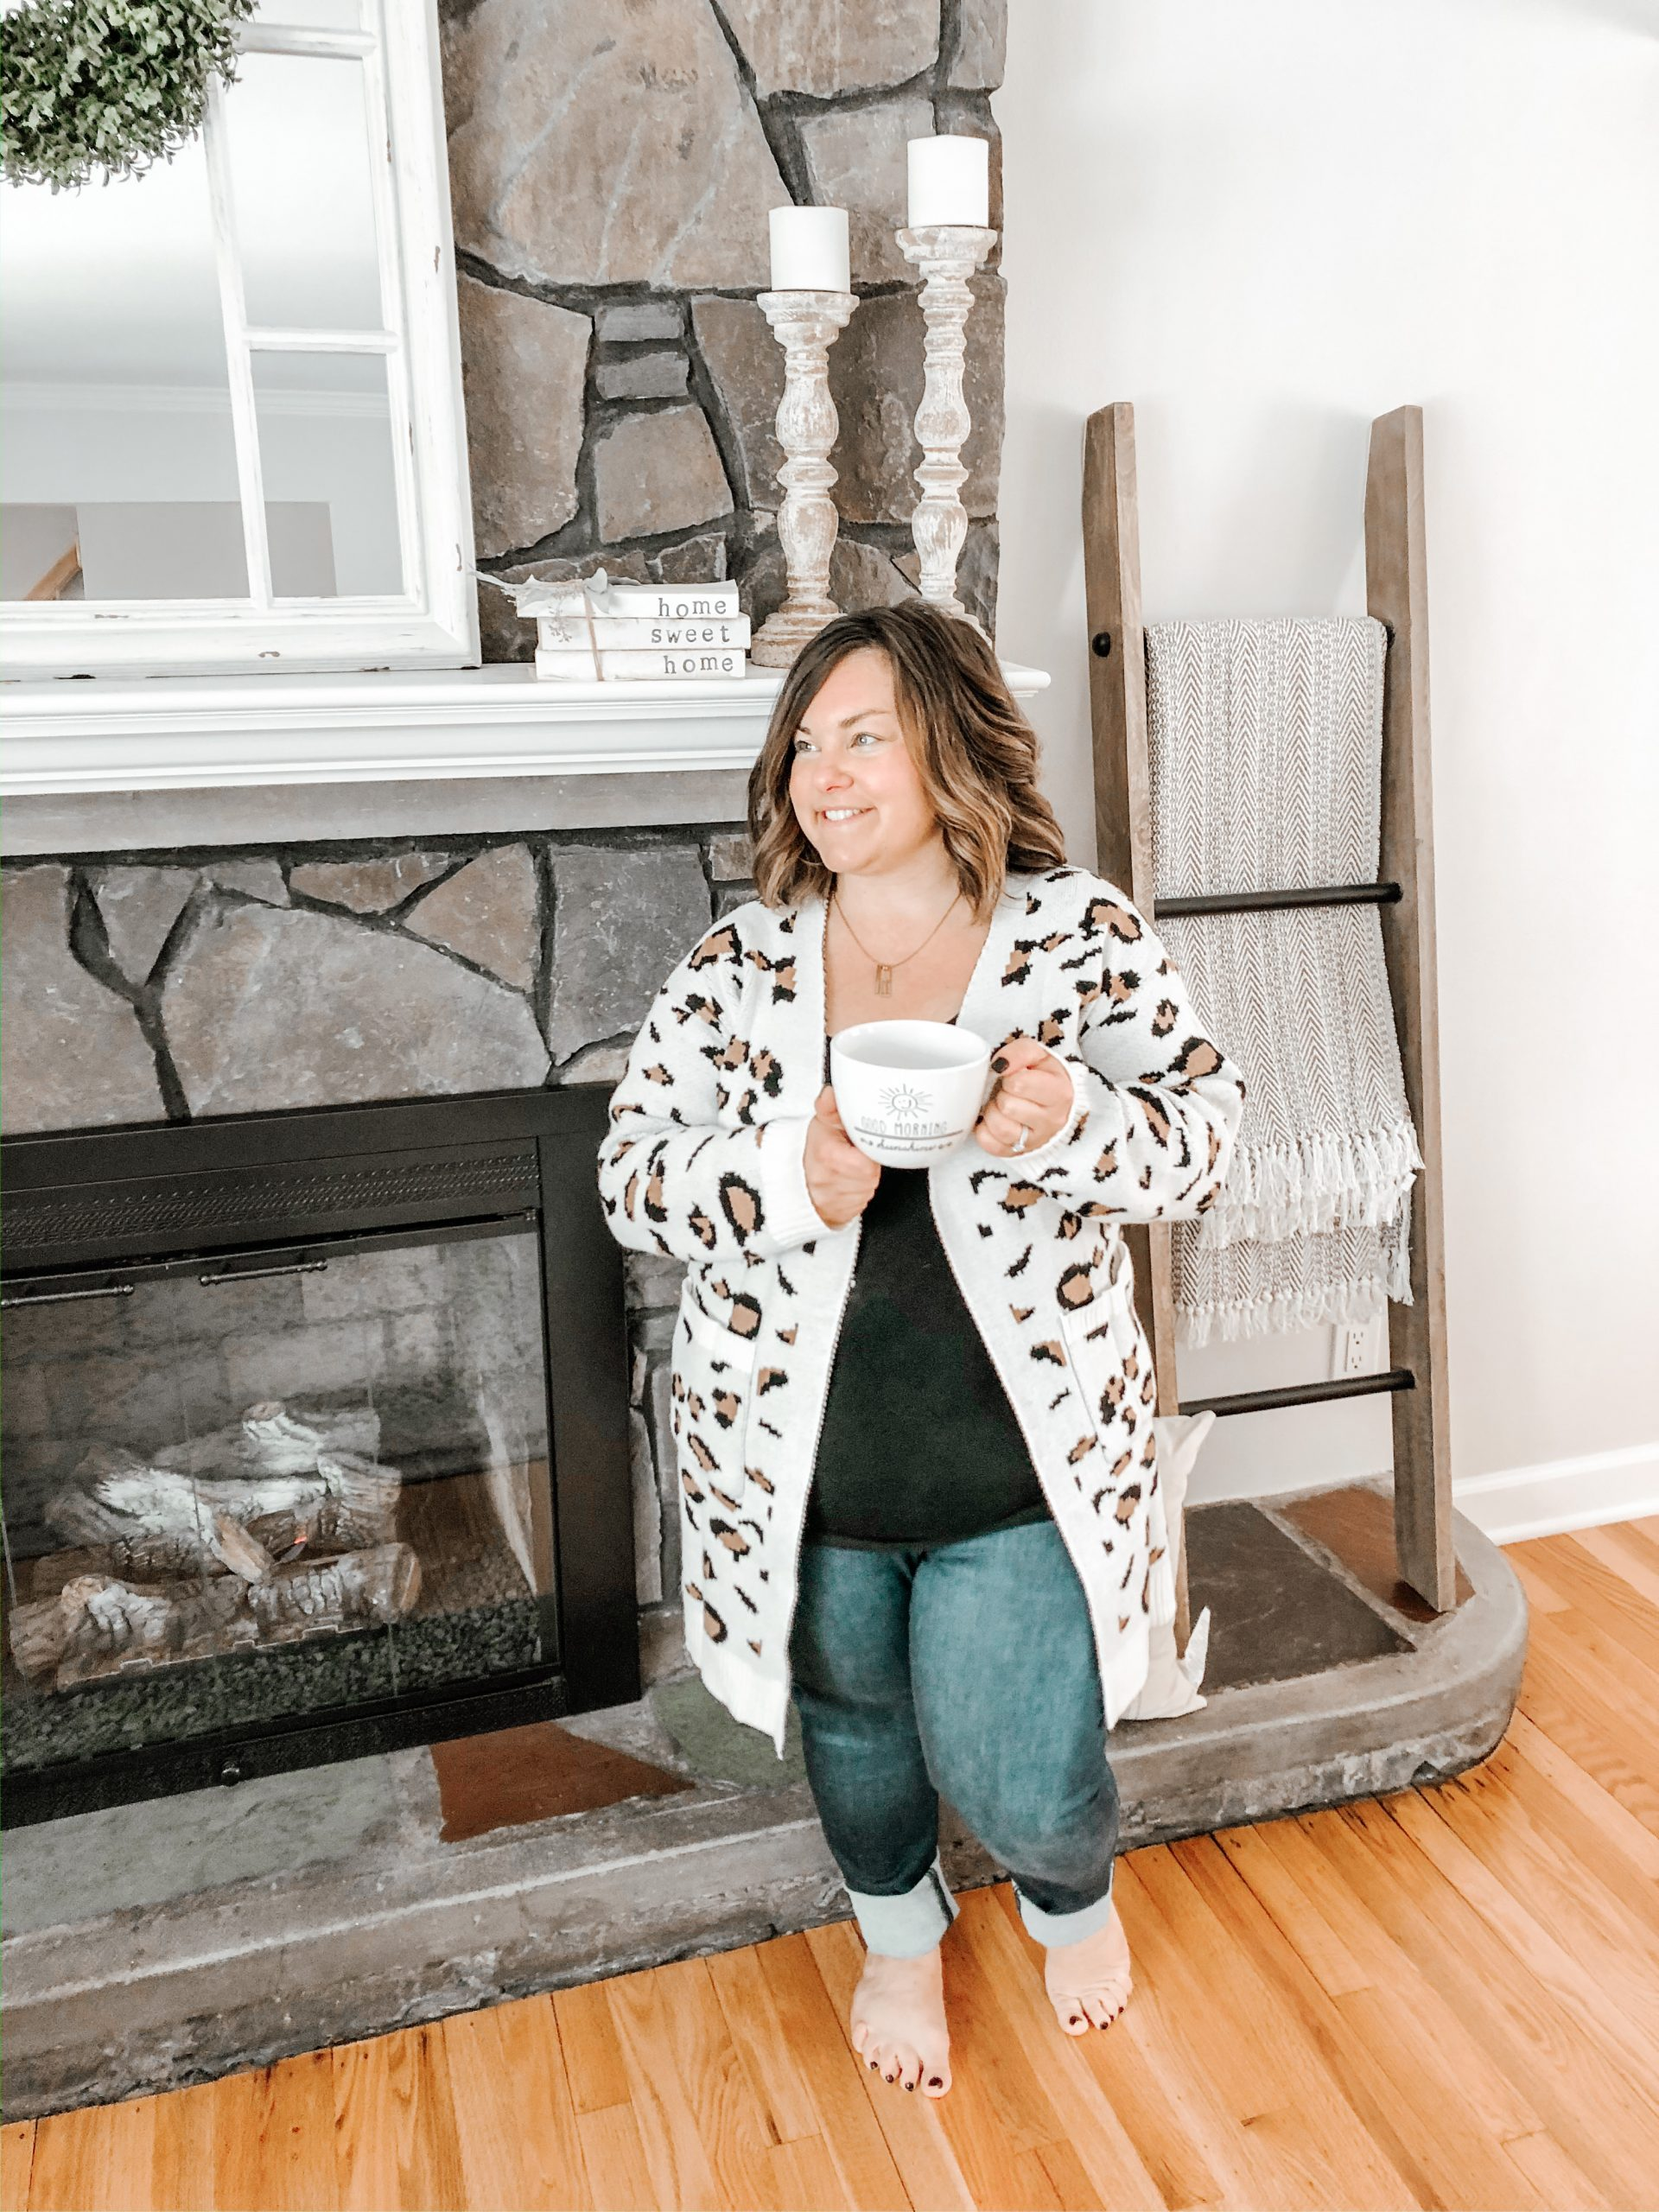 Upstate New York wife, mama and blogger Nicolle from Our Tiny Nest